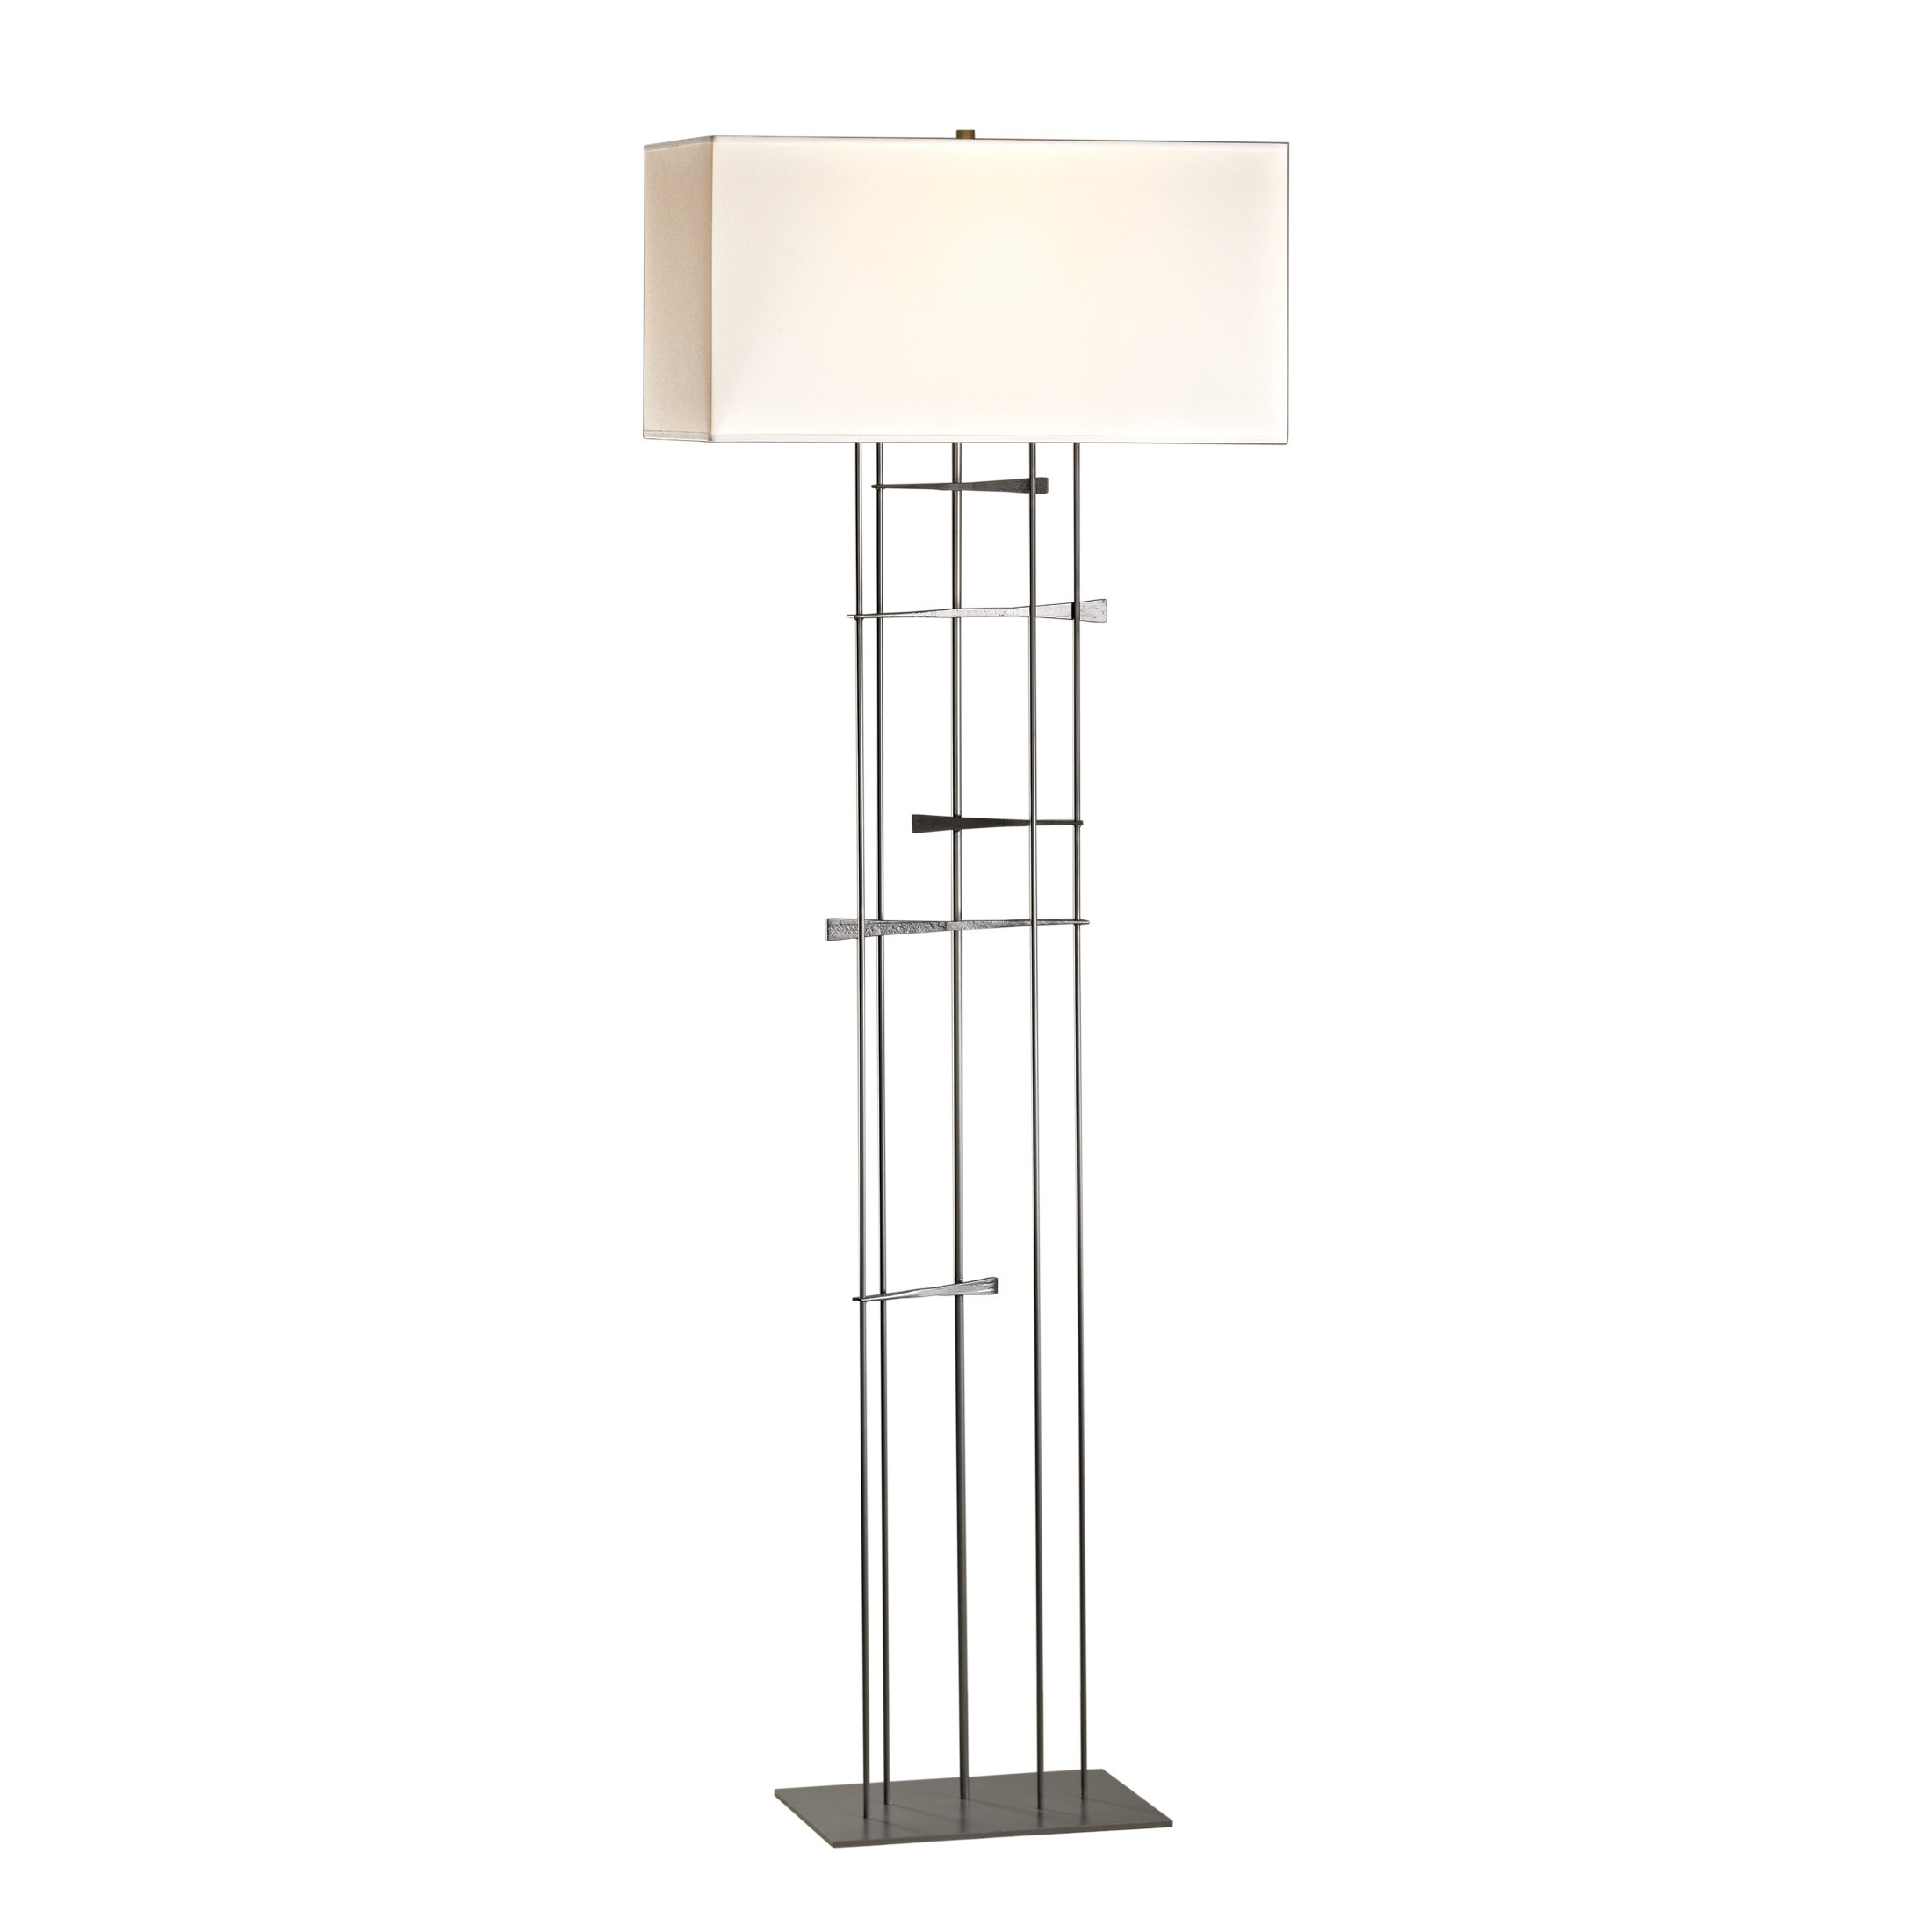 Hubbardton Forge 237670-1034 Cavaletti Floor Lamp Natural Anna, Vintage Platinum Finish by Hubbardton Forge (Image #1)